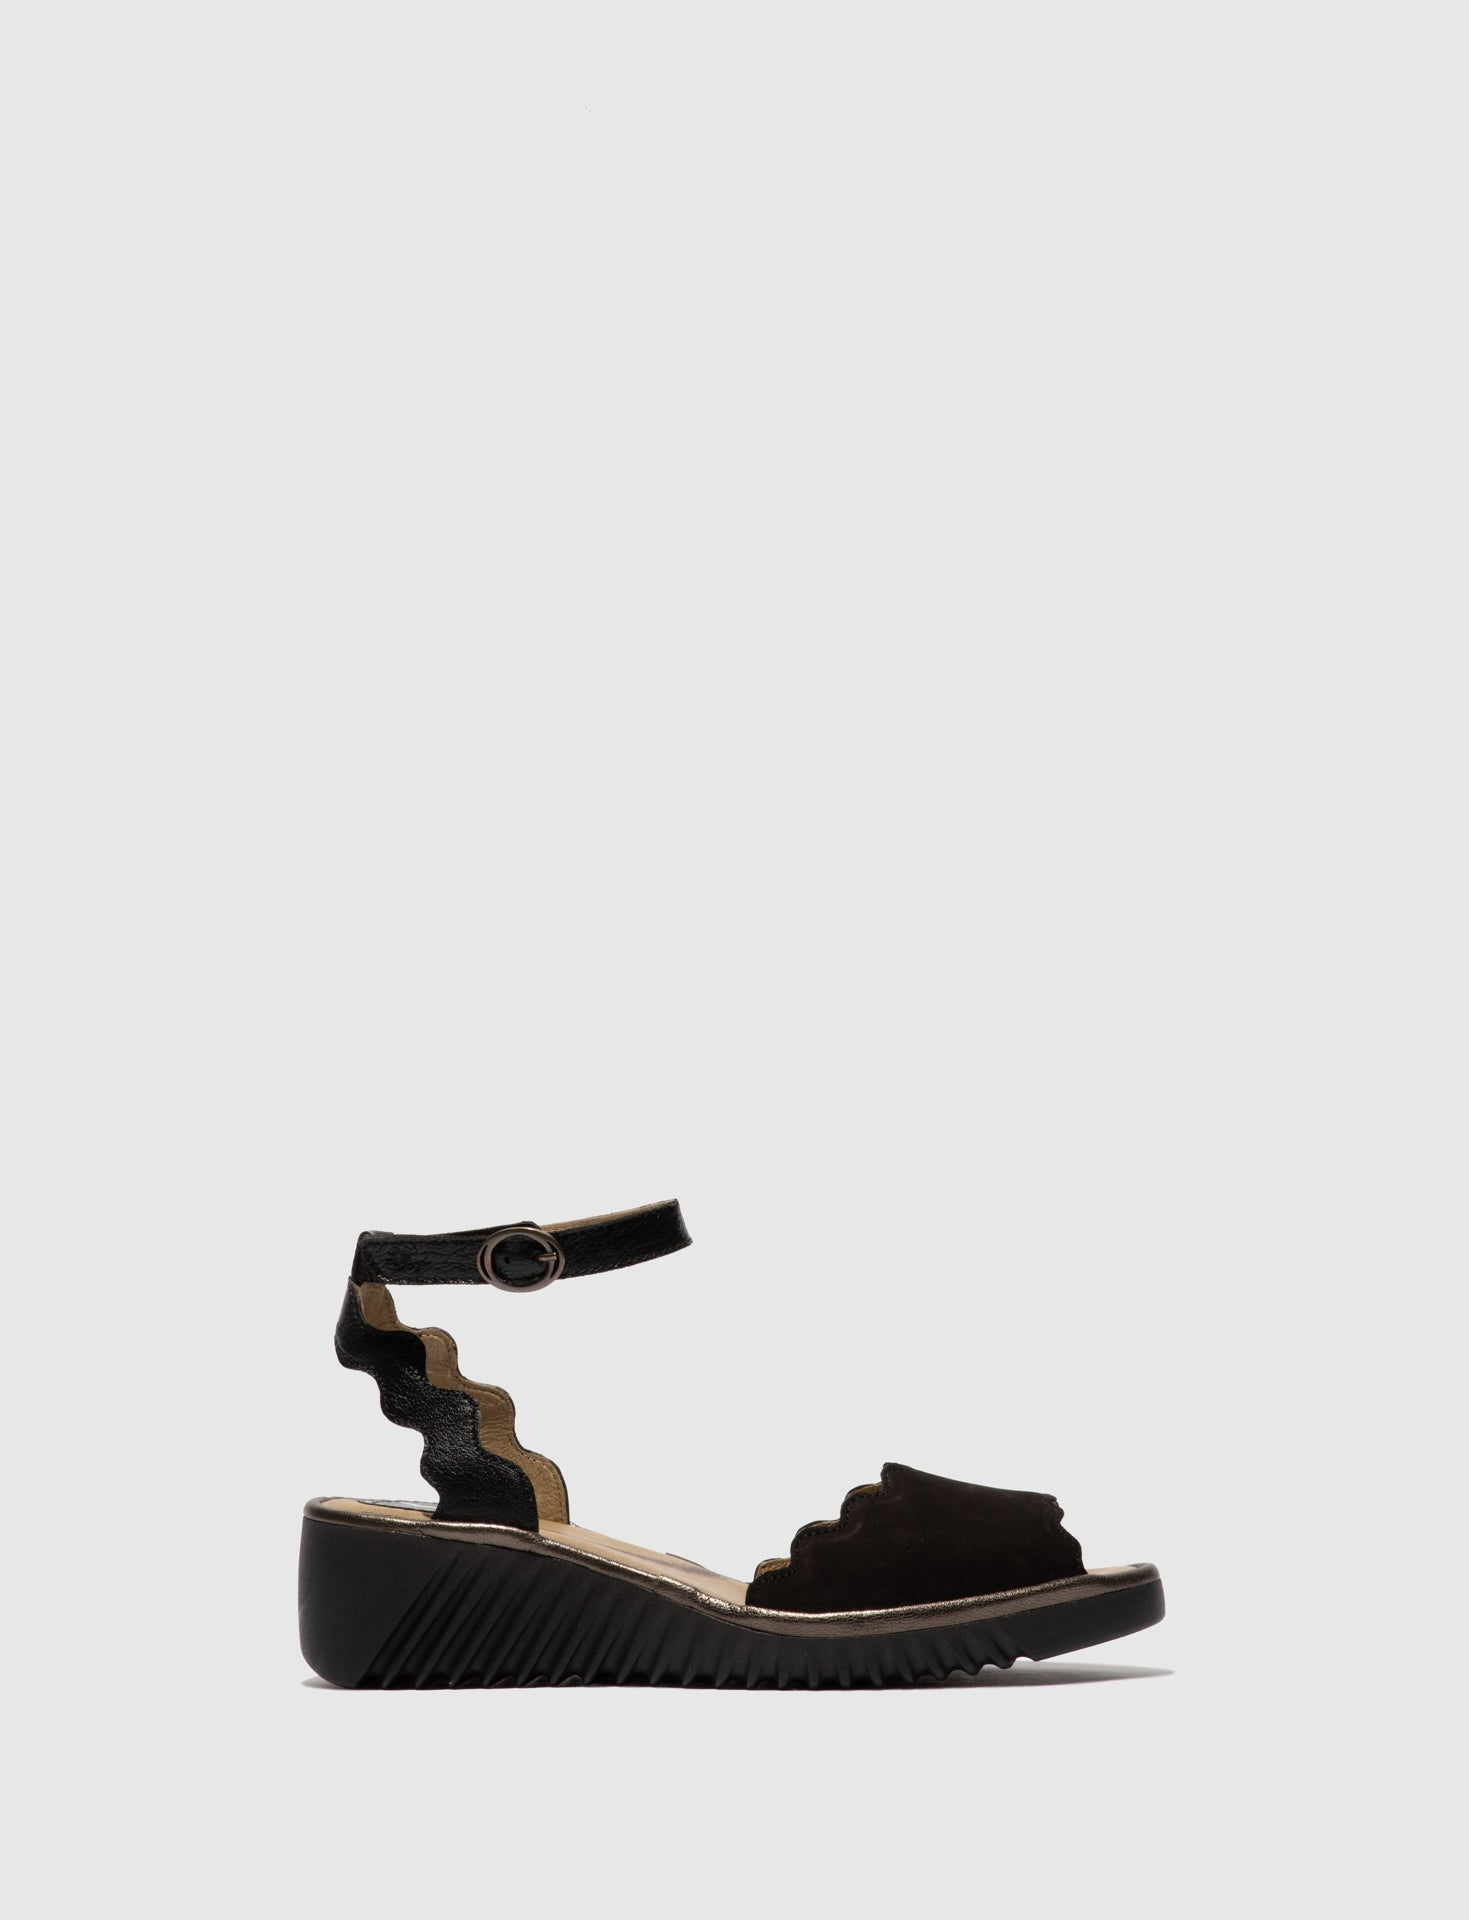 Fly London Ankle Strap Sandals LUME319FLY CUPIDO/MOUSSE/IDRA  BLACK/BLACK/BRONZE